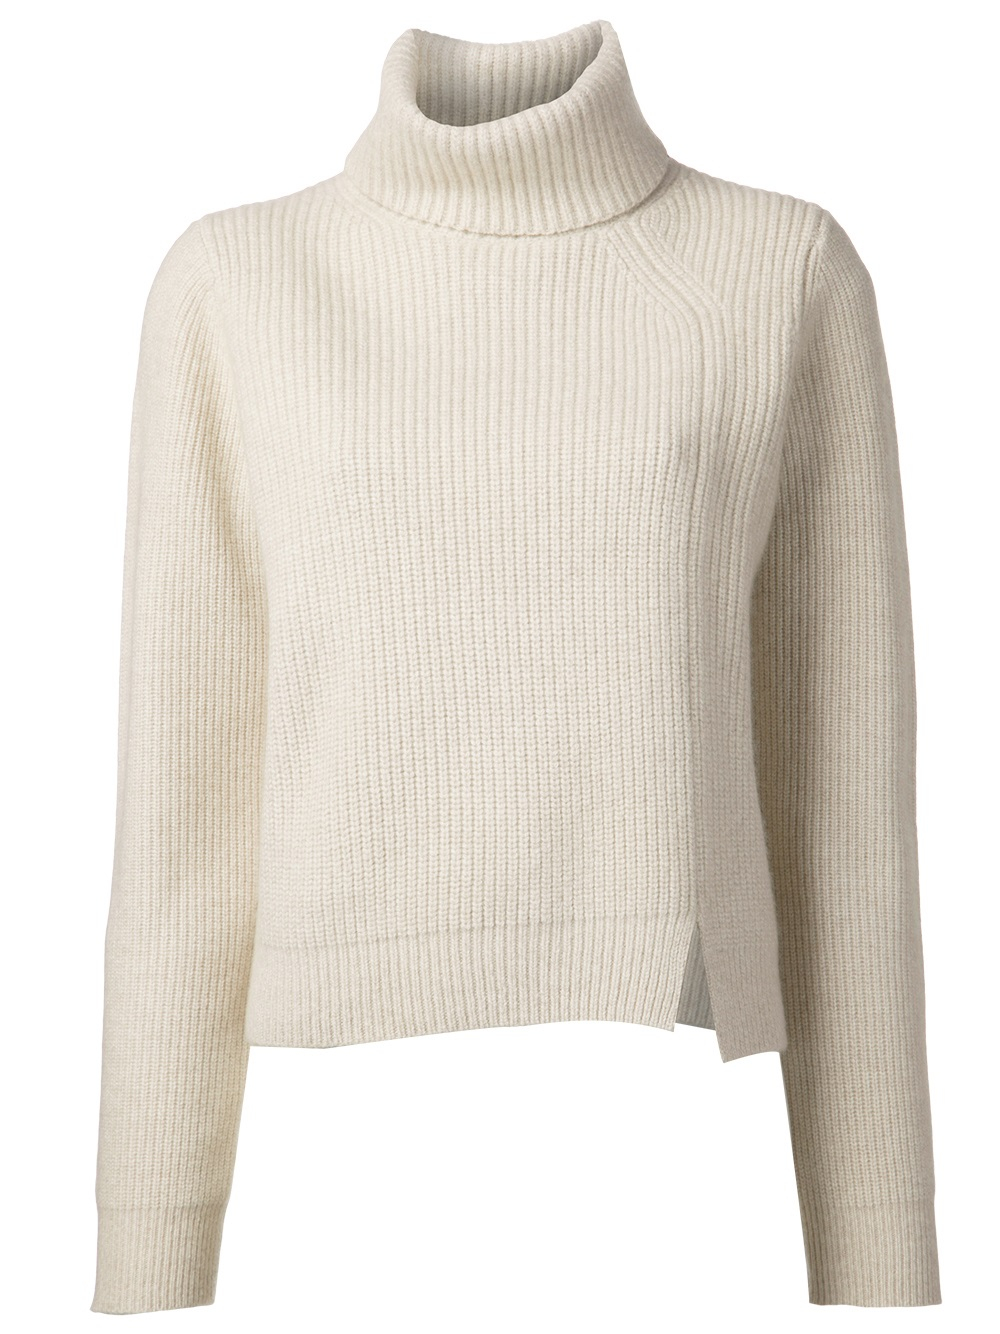 Proenza schouler Turtleneck Sweater in Natural | Lyst